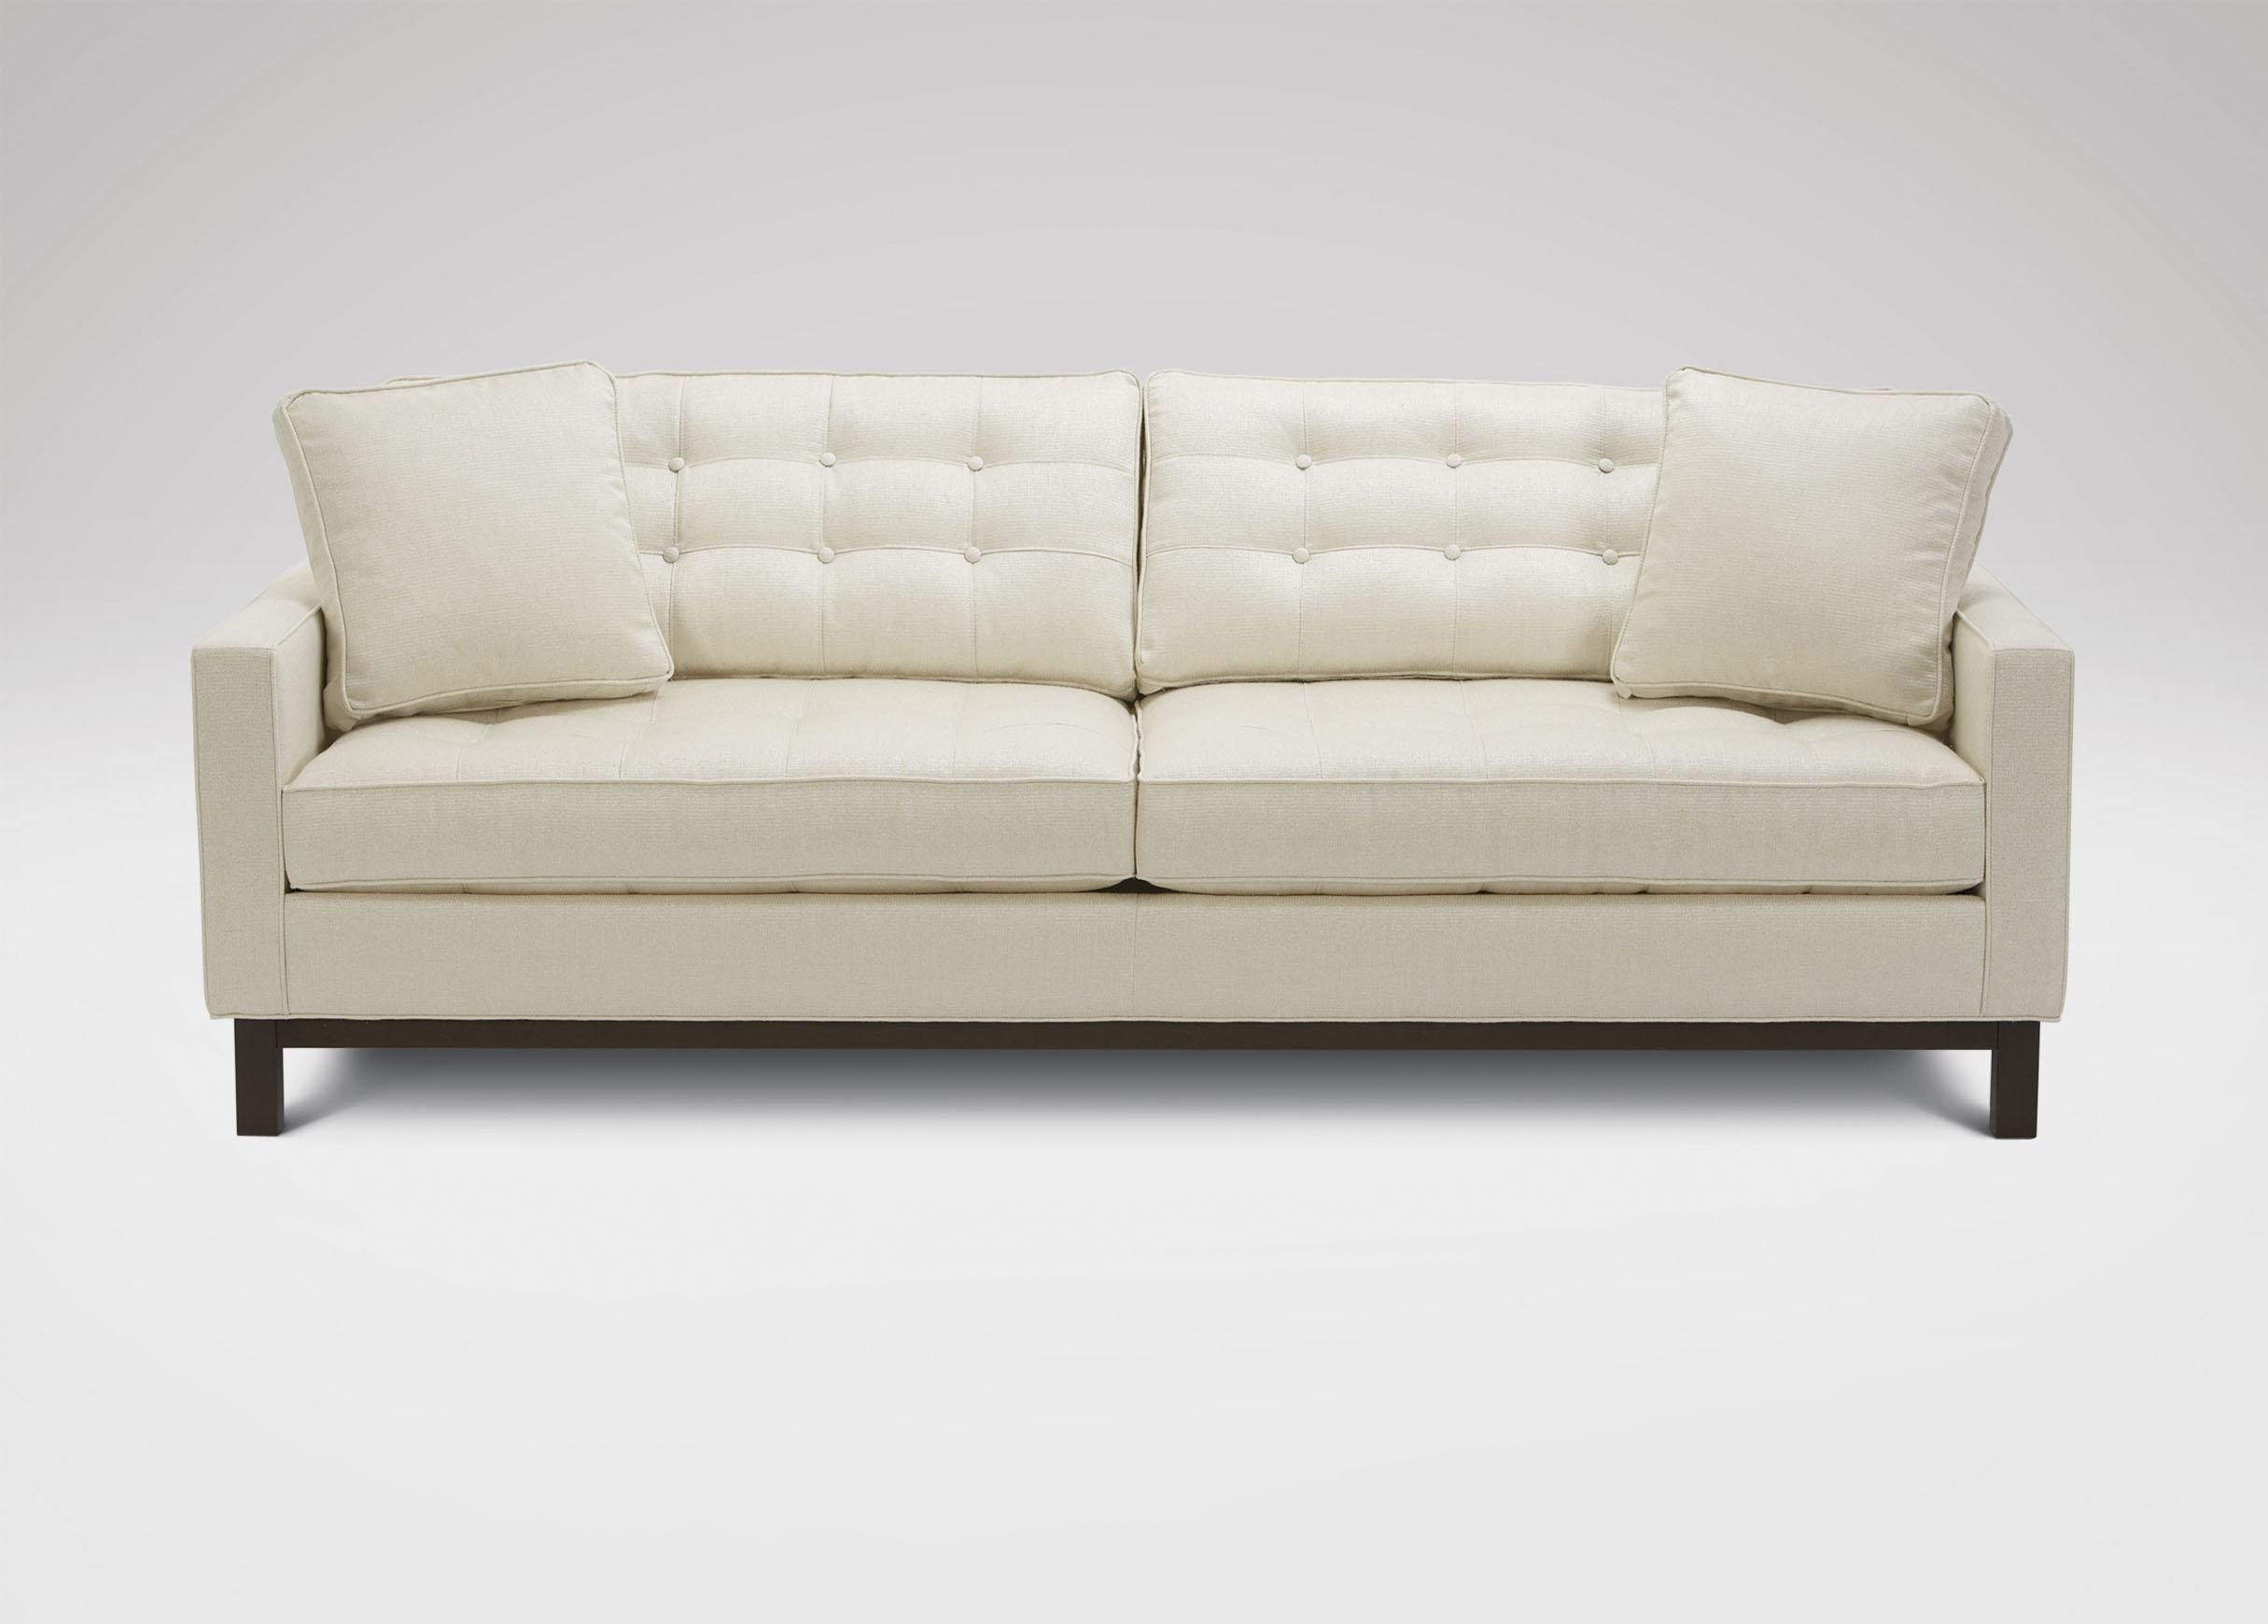 Melrose Sofa | Sofas & Loveseats For Ethan Allen Sofas And Chairs (Image 15 of 20)